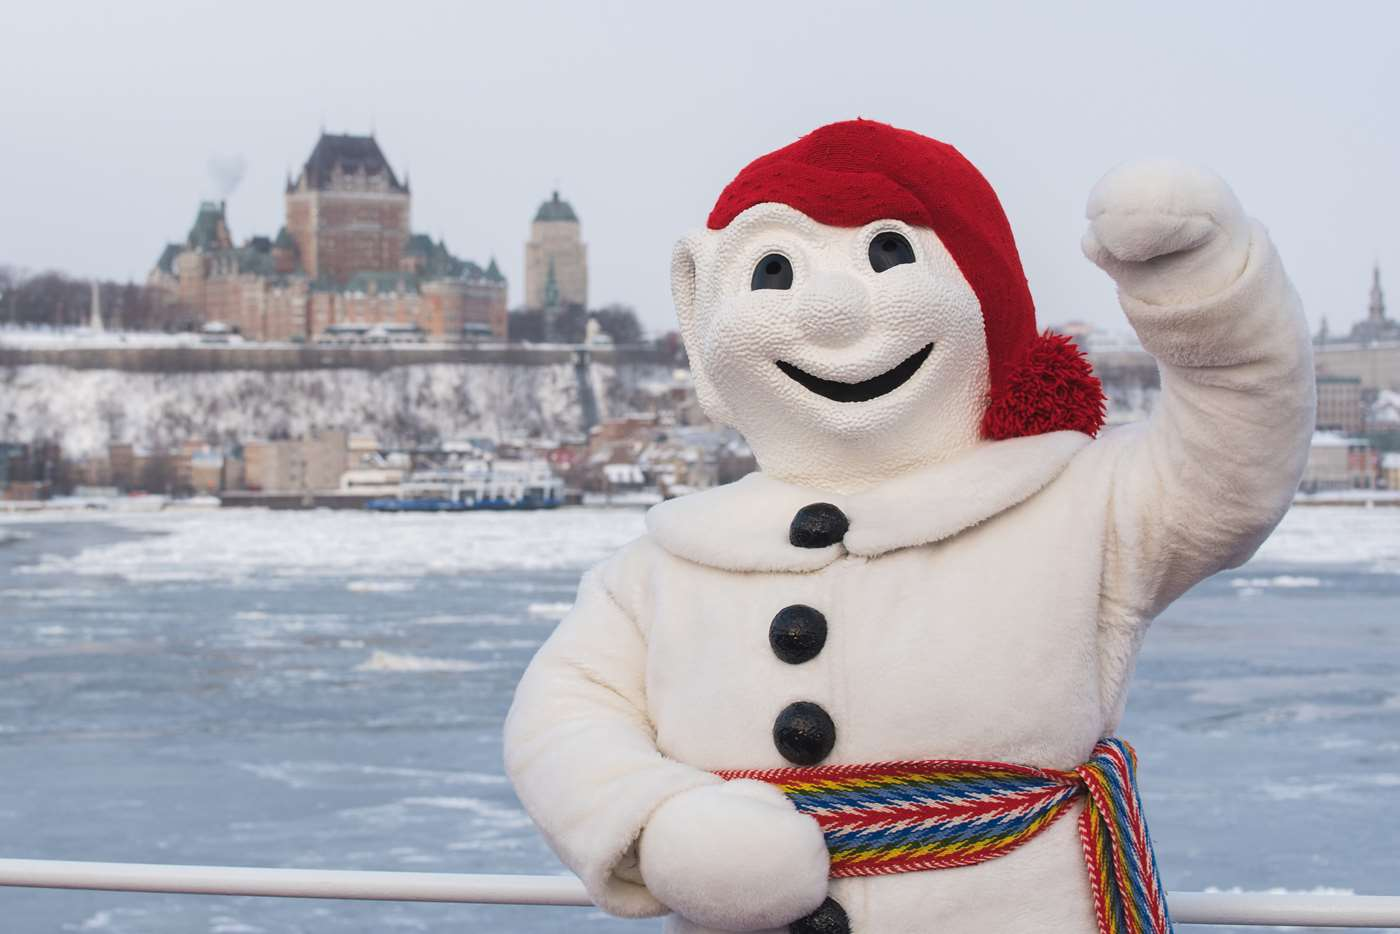 Say bonjour to Bonhomme, the jolly snowman mascot of Quebec City's legendary Carnaval, a citywide winter carnival that dates back to 1894. (Francis Gagnon)